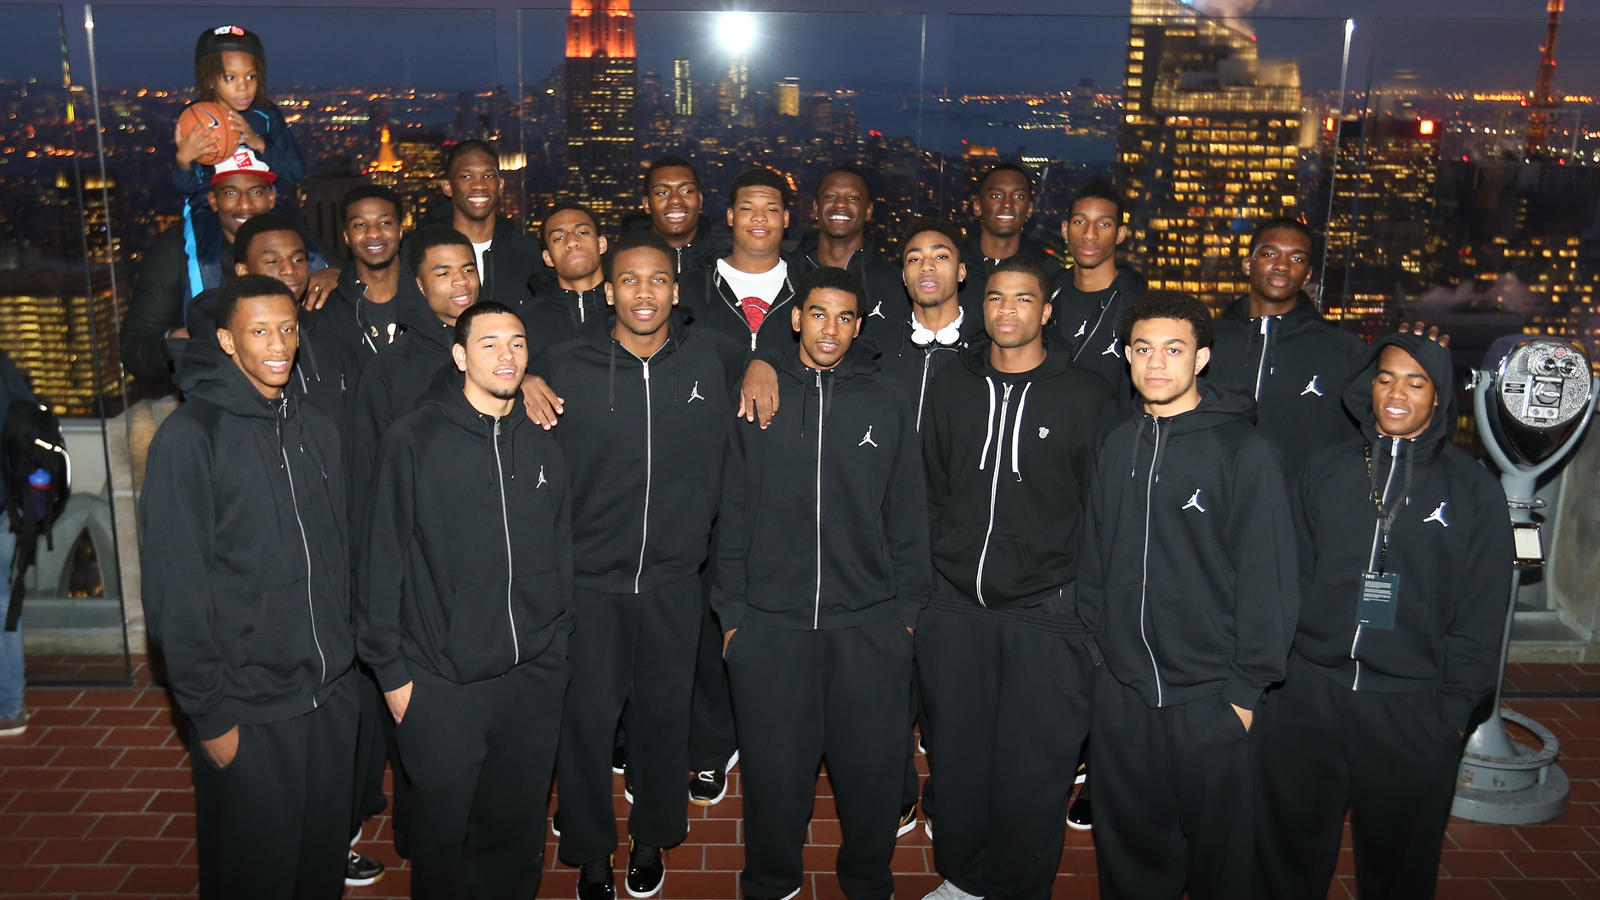 JBC NATIONAL TEAM AT THE TOP OF THE ROCK